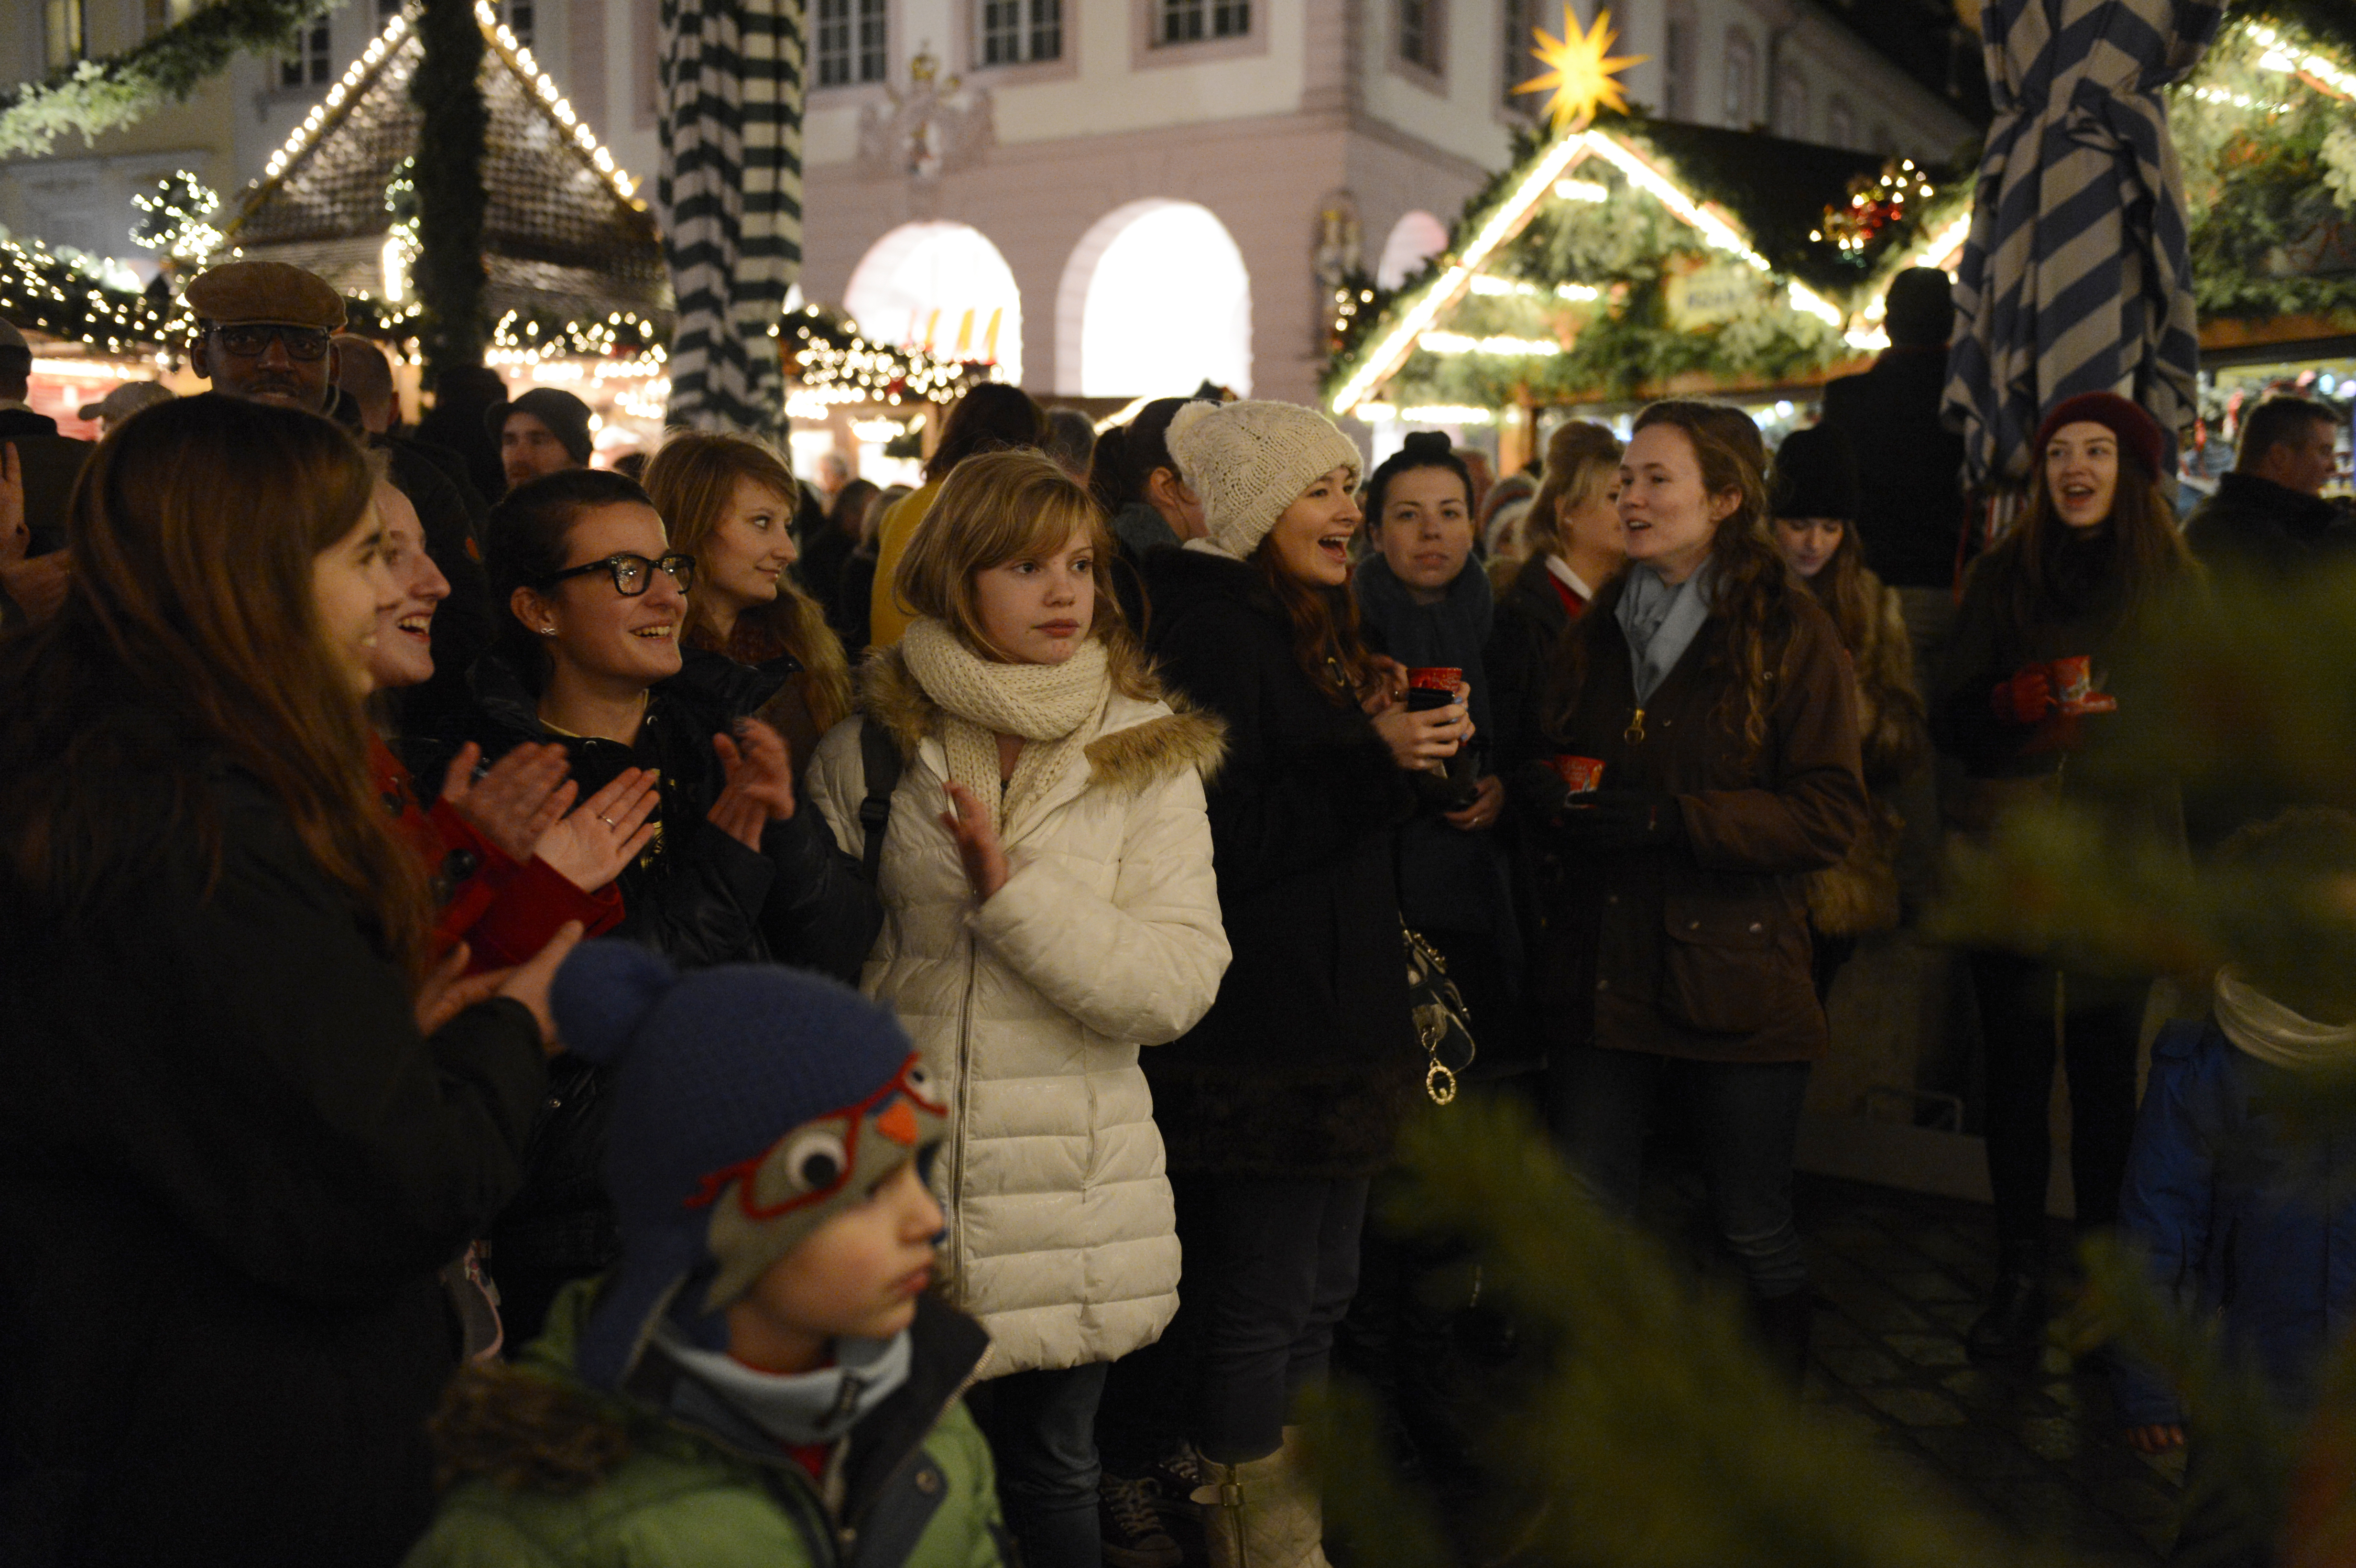 A crowd applauds after a holiday musical performance by Five Star Brass, the brass quintet of the U.S. Air Forces in Europe Band, at a Weihnachtsmarkt, or Christmas market, in Trier, Germany, Dec. 17, 2013. (U.S. Air Force photo by the Staff Sgt. Christopher Ruano/Released)